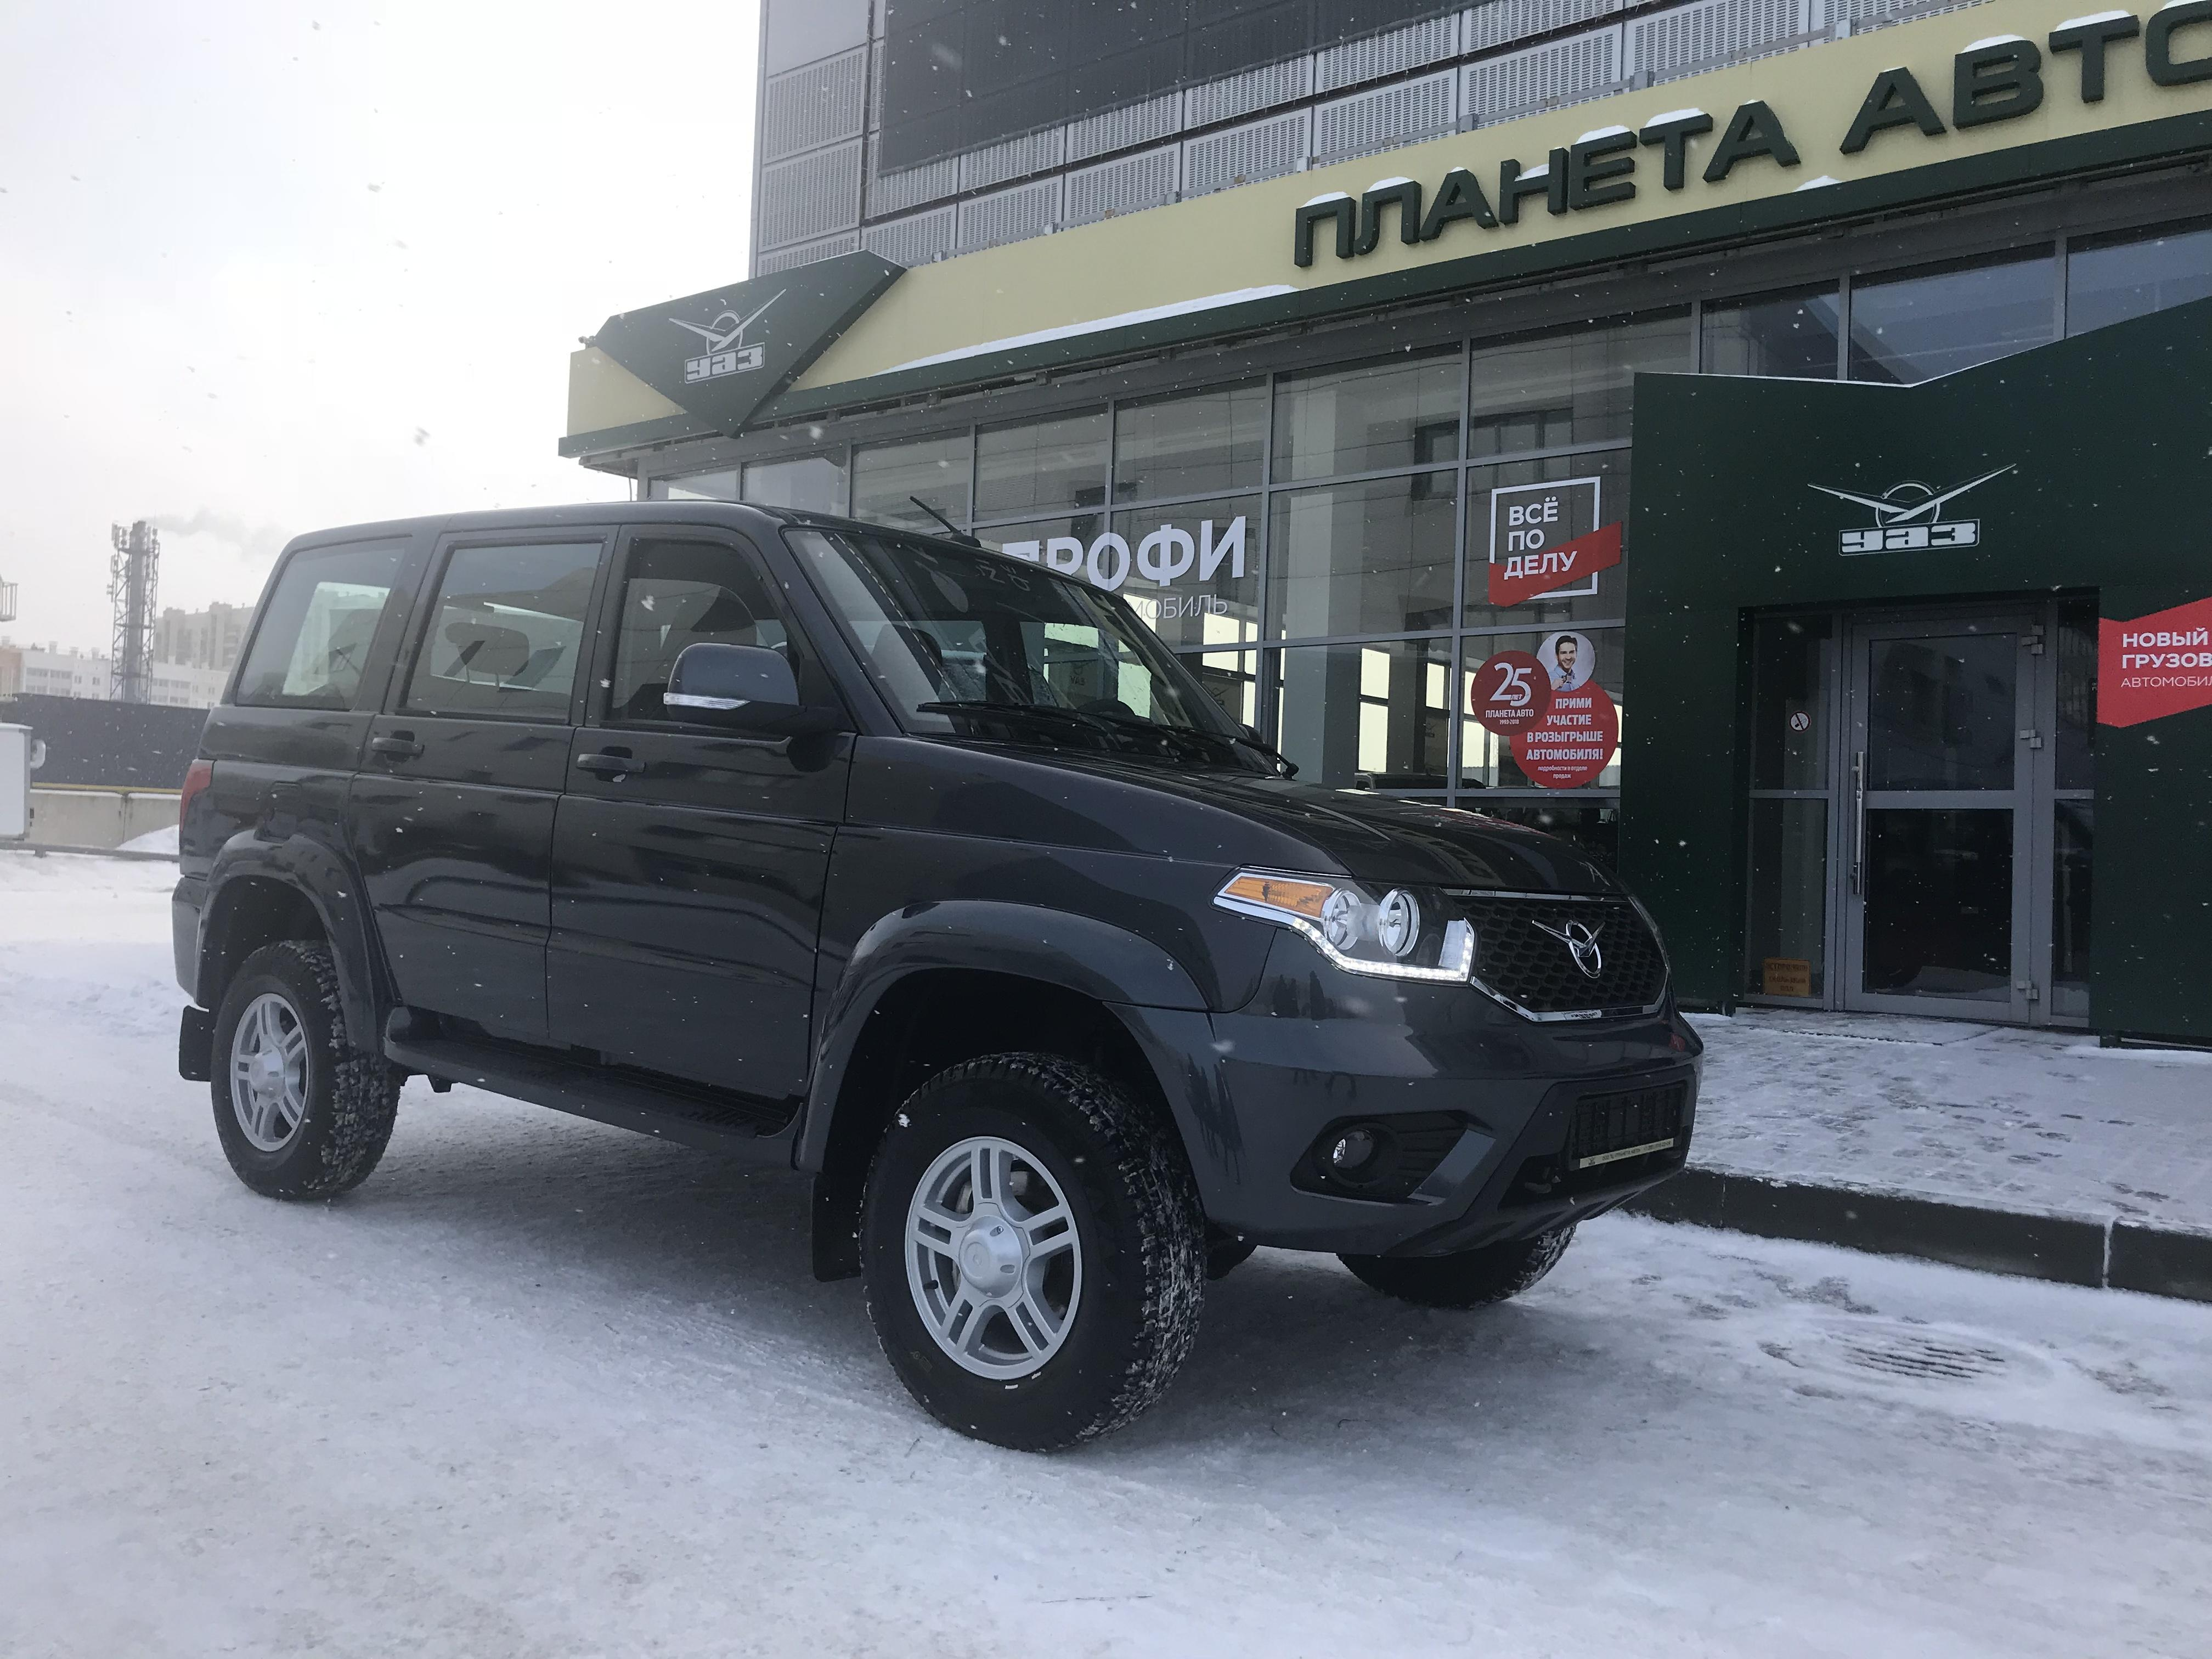 УАЗ Patriot 2.7 MT (134,6 л. с.) Престиж 385-03